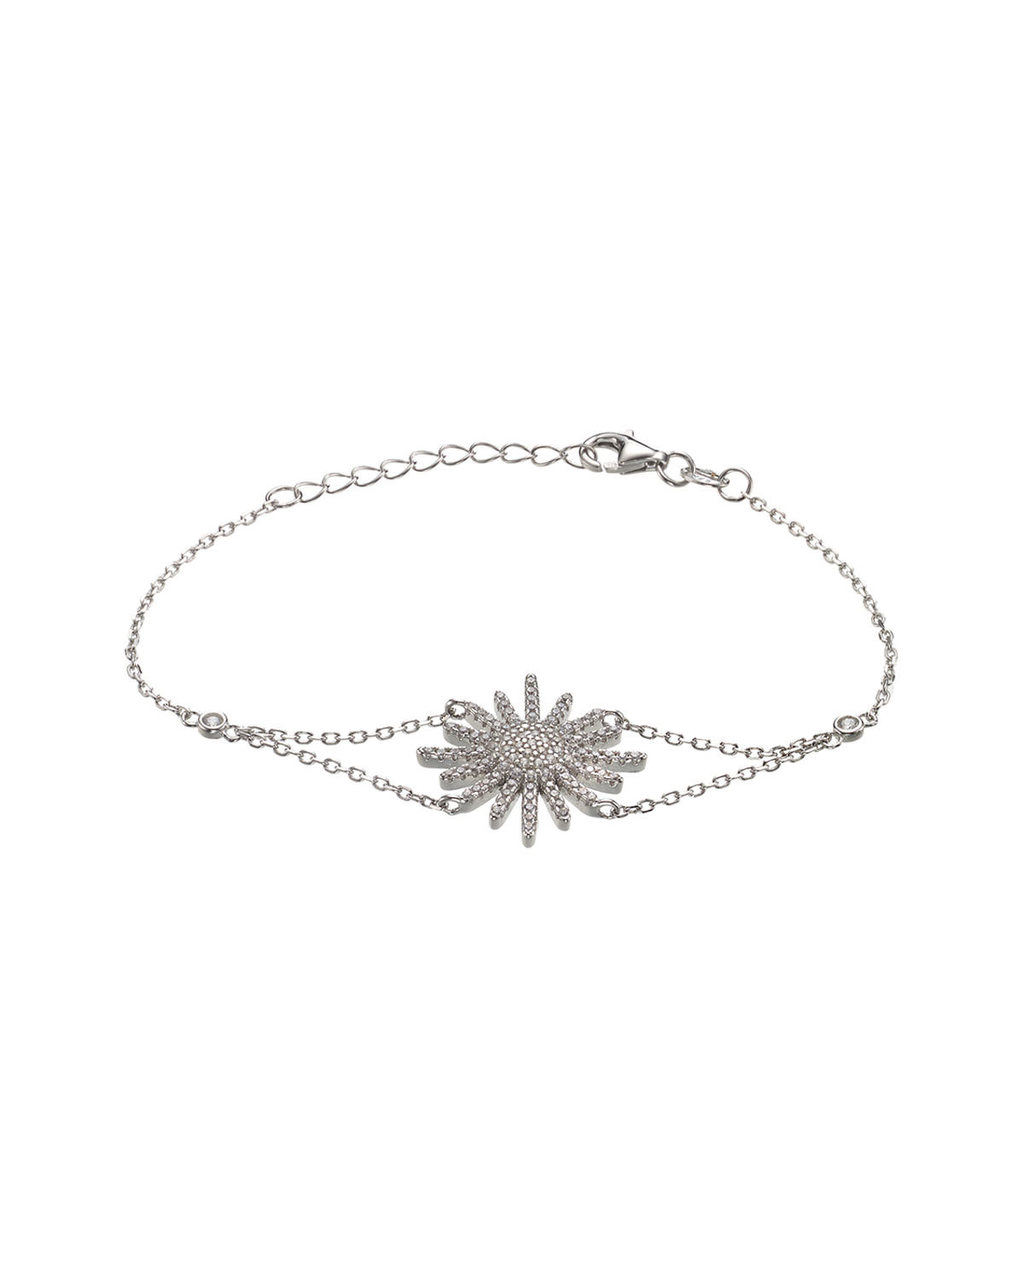 Cubic Zirconia Starburst Bracelet - predominant colour: silver; occasions: evening, occasion; style: chain; size: small/fine; material: chain/metal; finish: metallic; embellishment: chain/metal; season: s/s 2016; wardrobe: event